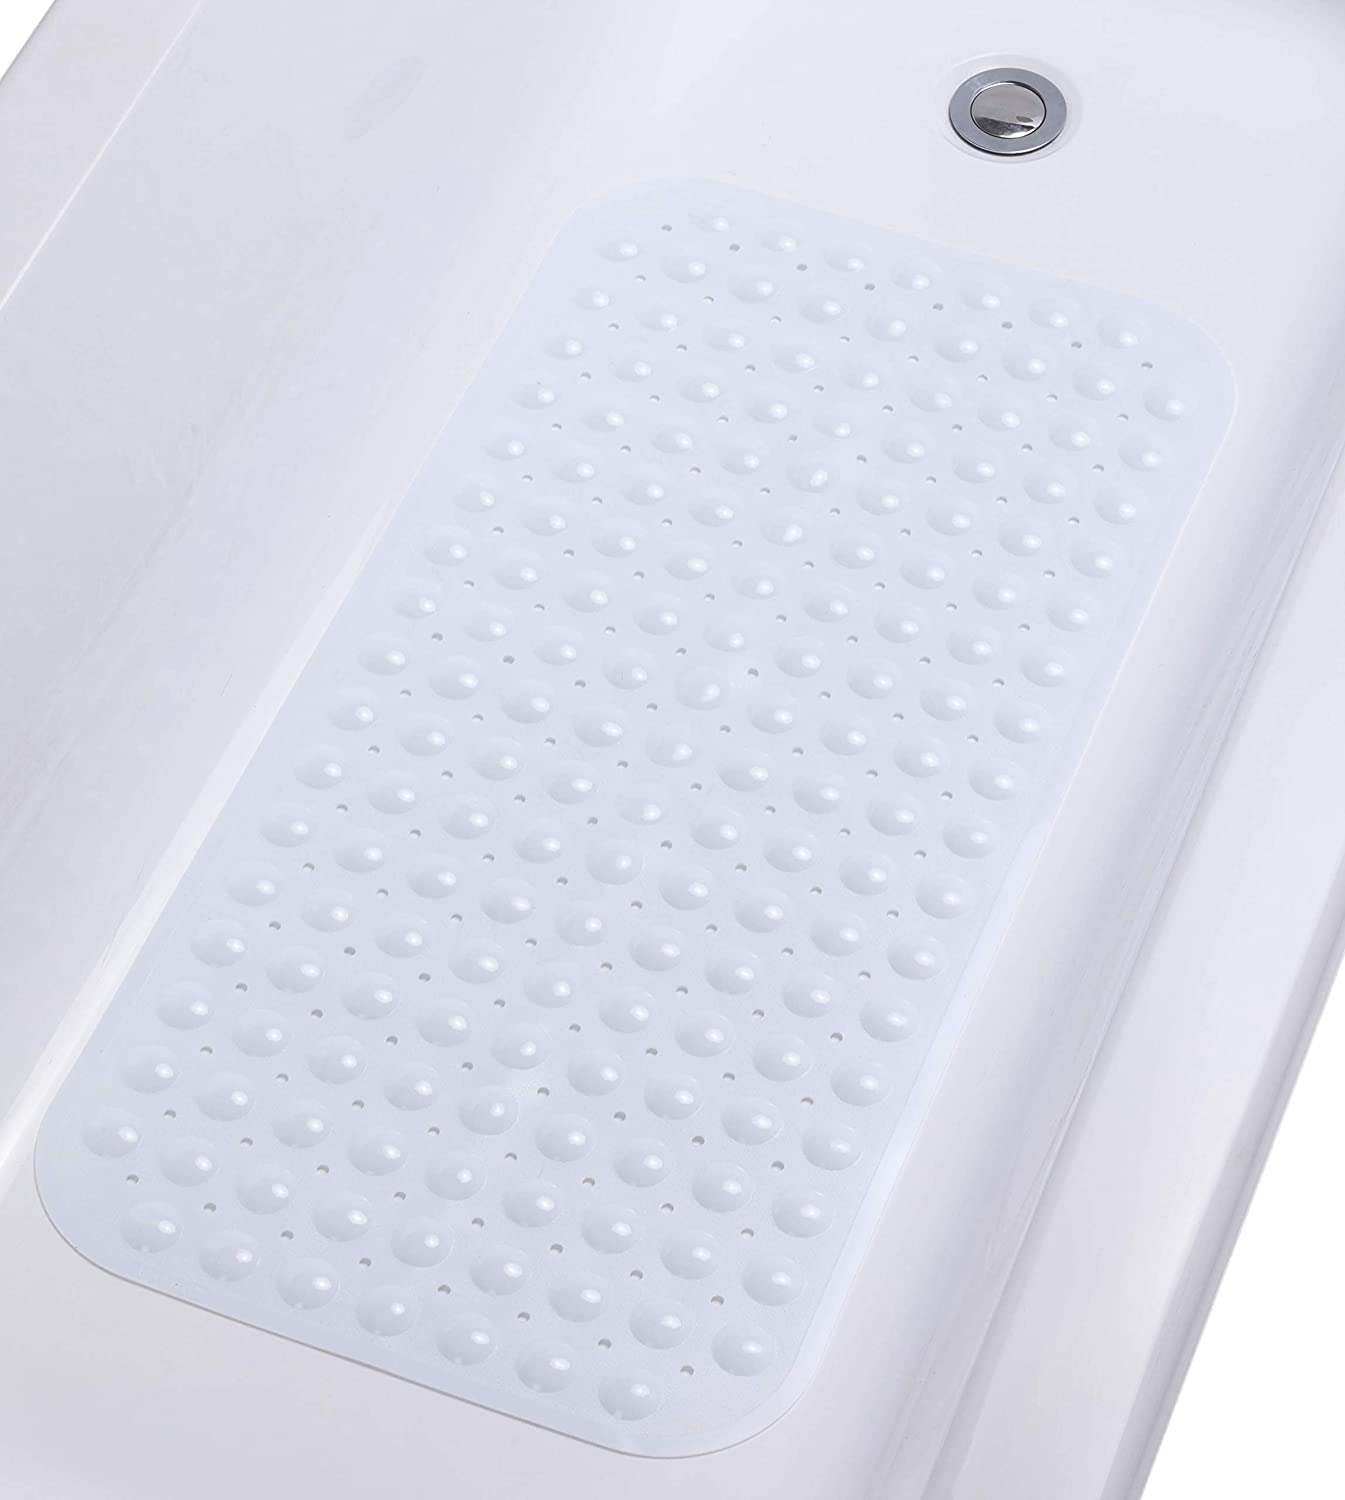 "TIKE SMART Large Non-Slip Bathtub & Shower Mat 31""x16"" (Smooth/Non-Textured Tubs Only) Safe, Clean, Anti-Bacterial, Machine-Washable, Superior Grip&Drainage, Vinyl, Opaque White"